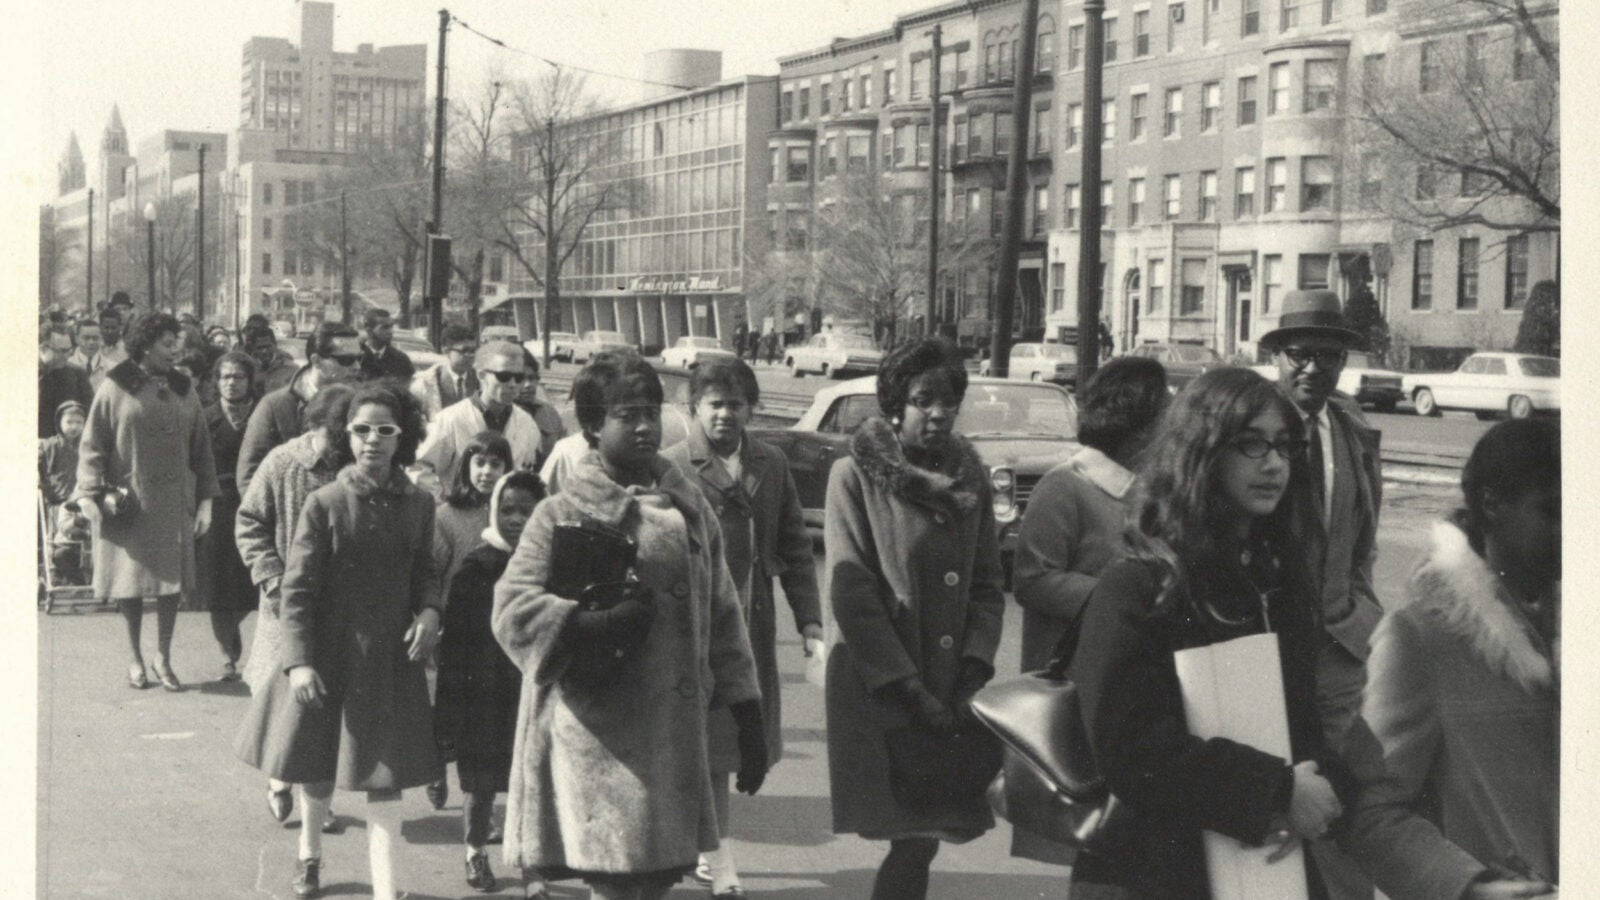 Civil rights march led by MLK from Roxbury to Boston Common, April 1965.